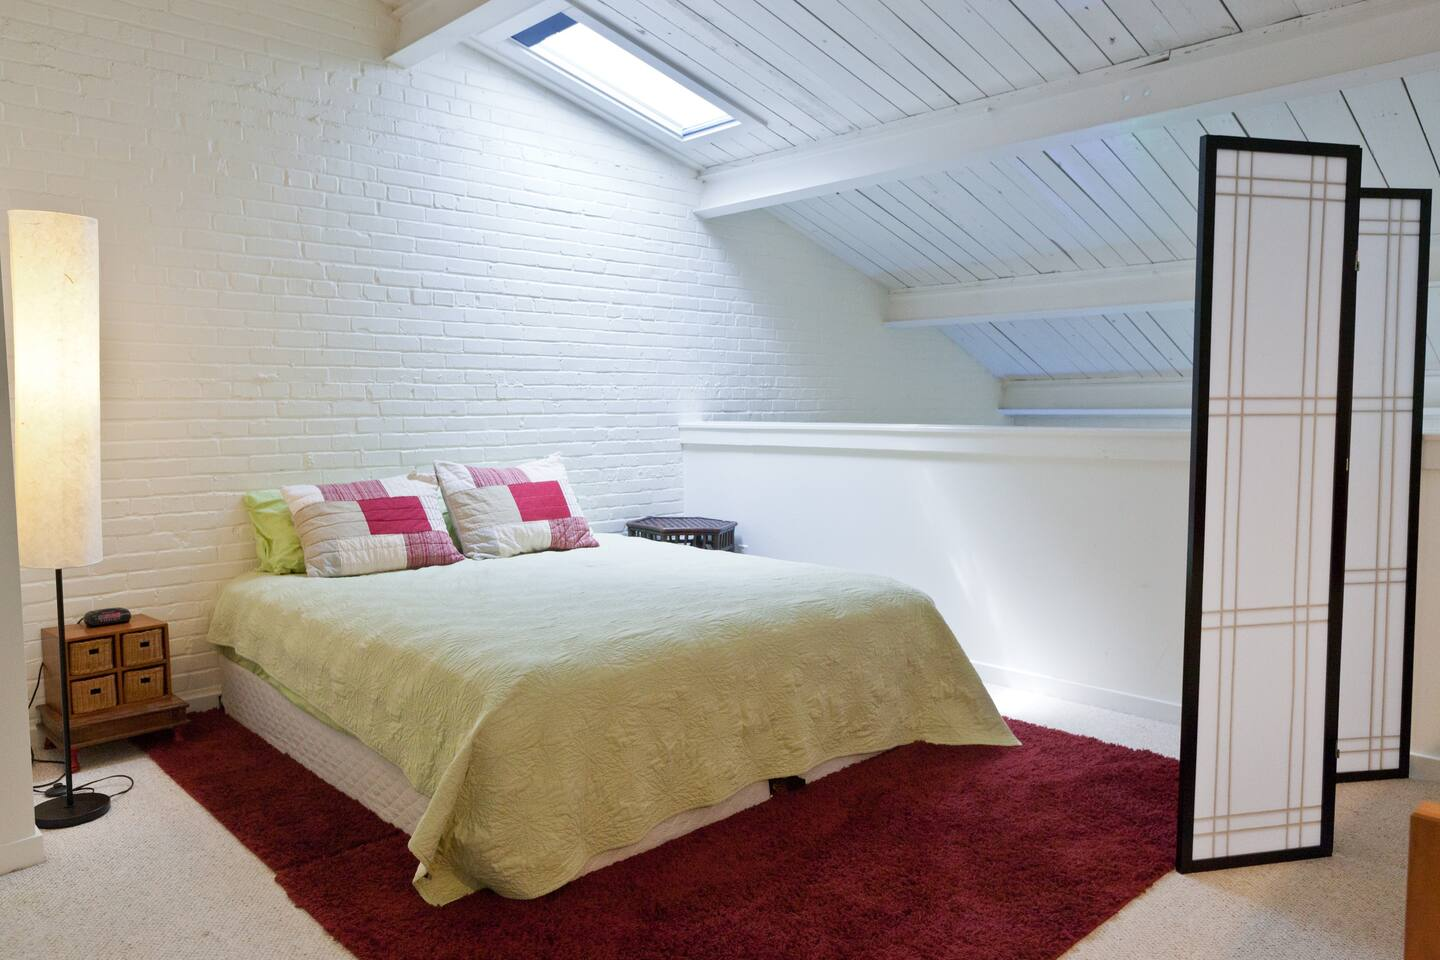 Pillowtop King Sized Bed in upstairs loft